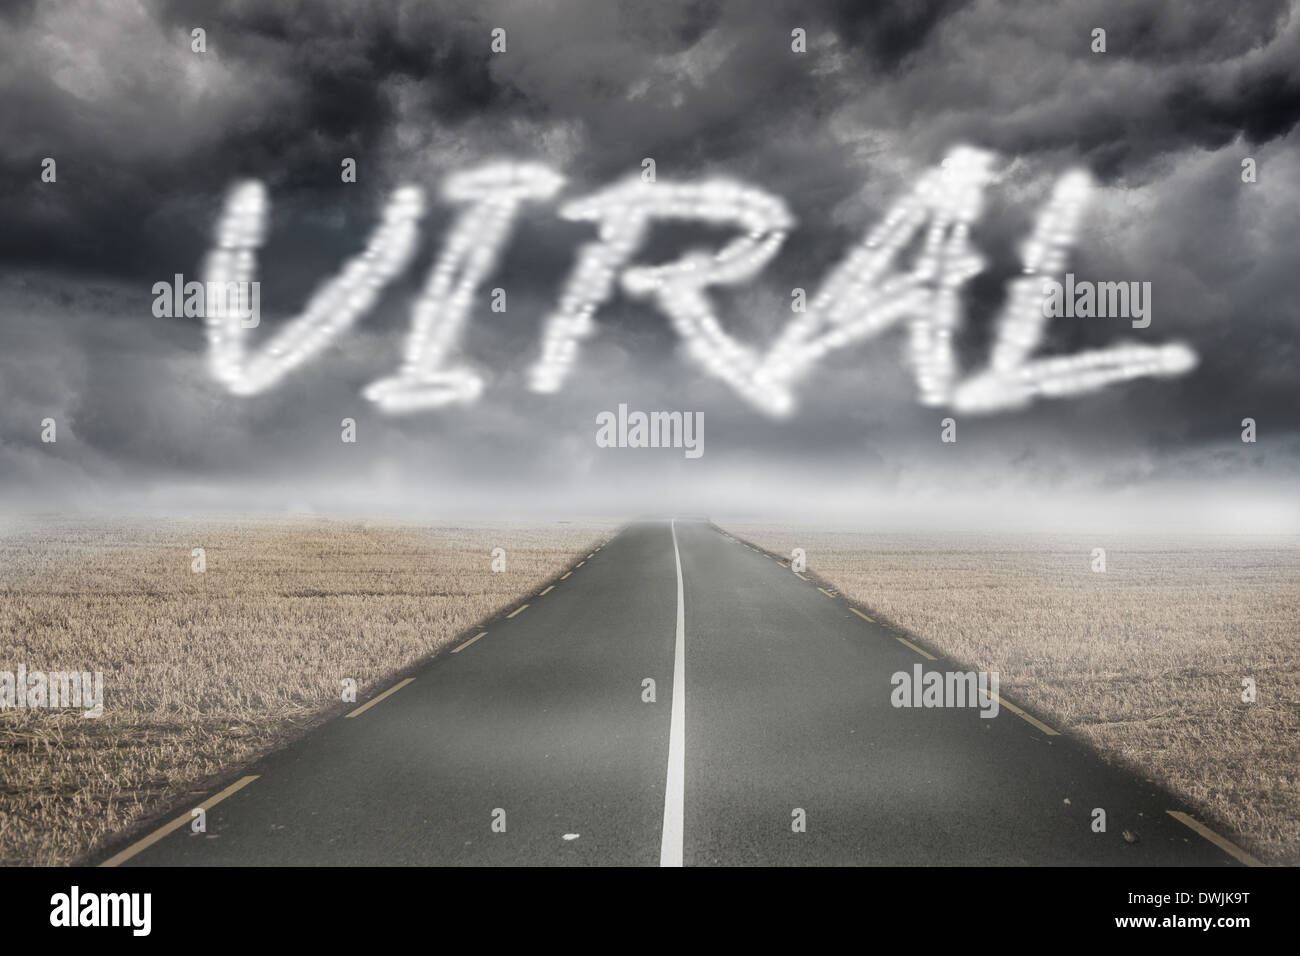 Viral against misty brown landscape with street - Stock Image